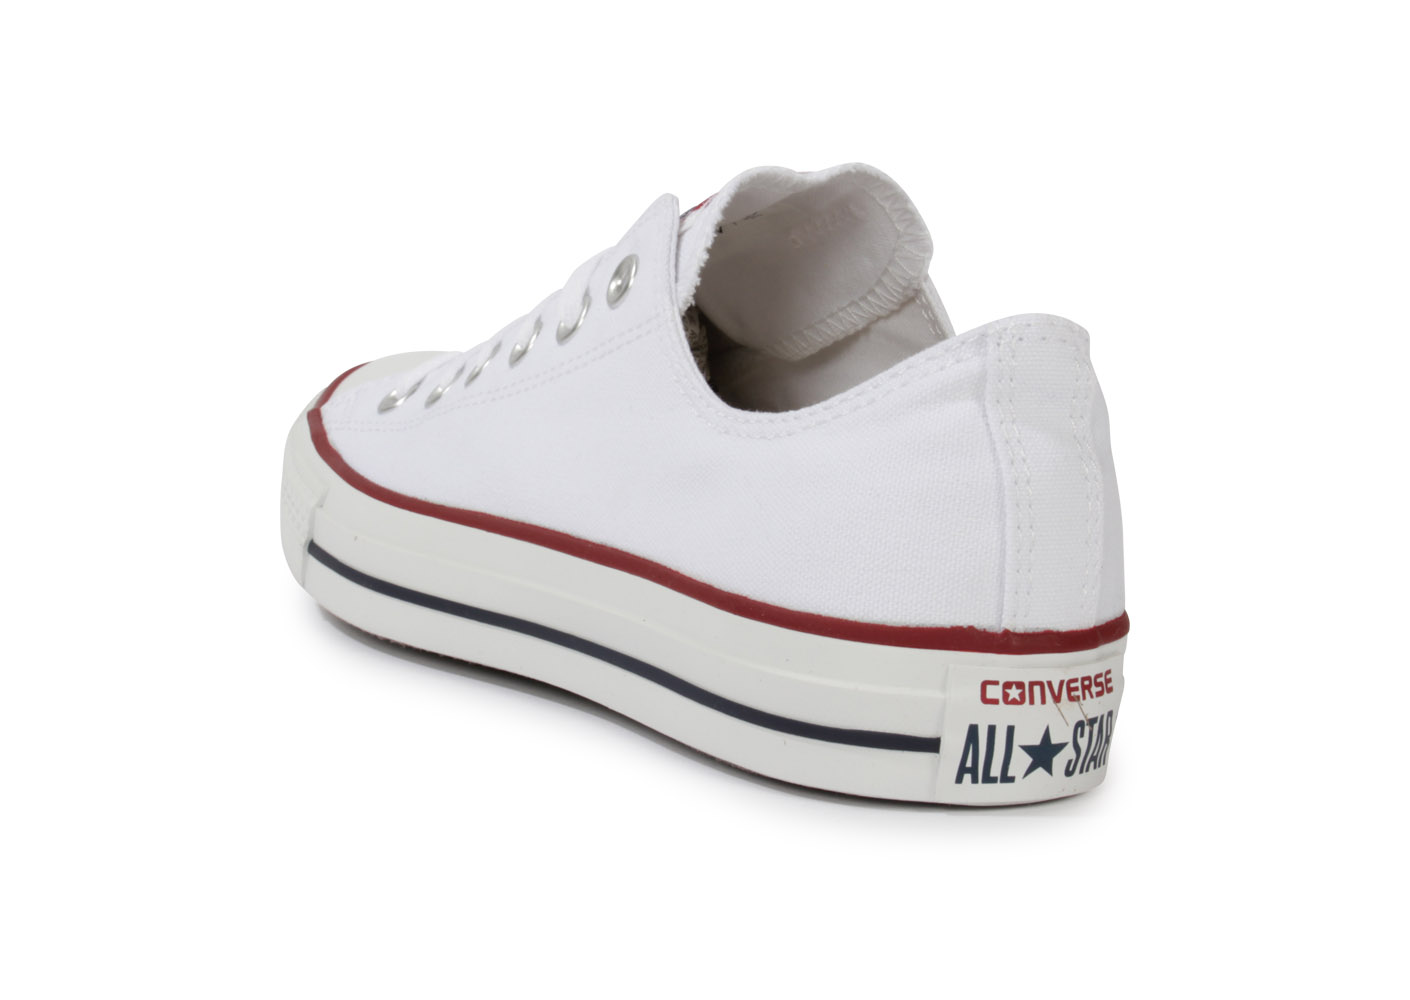 converse femme all star 2 blanche